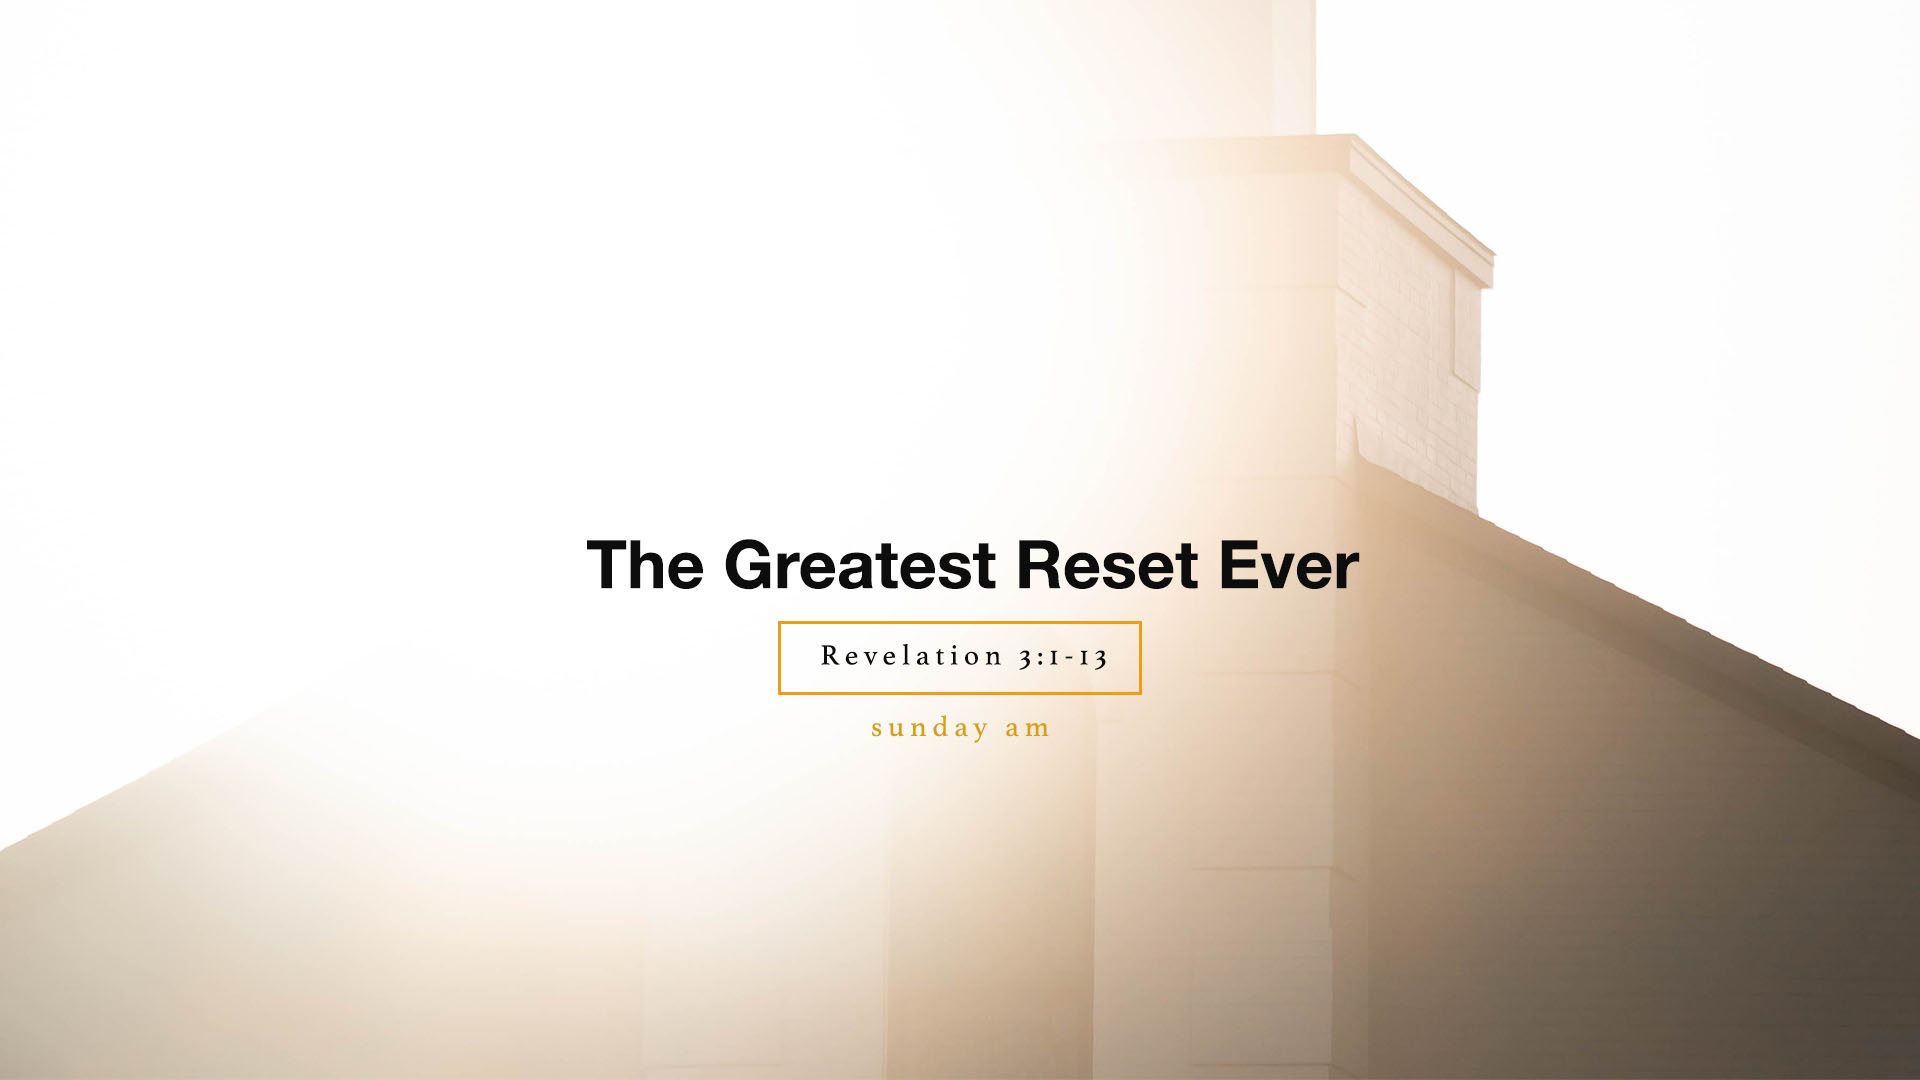 The Greatest Reset Ever - Revelation 3:10-13